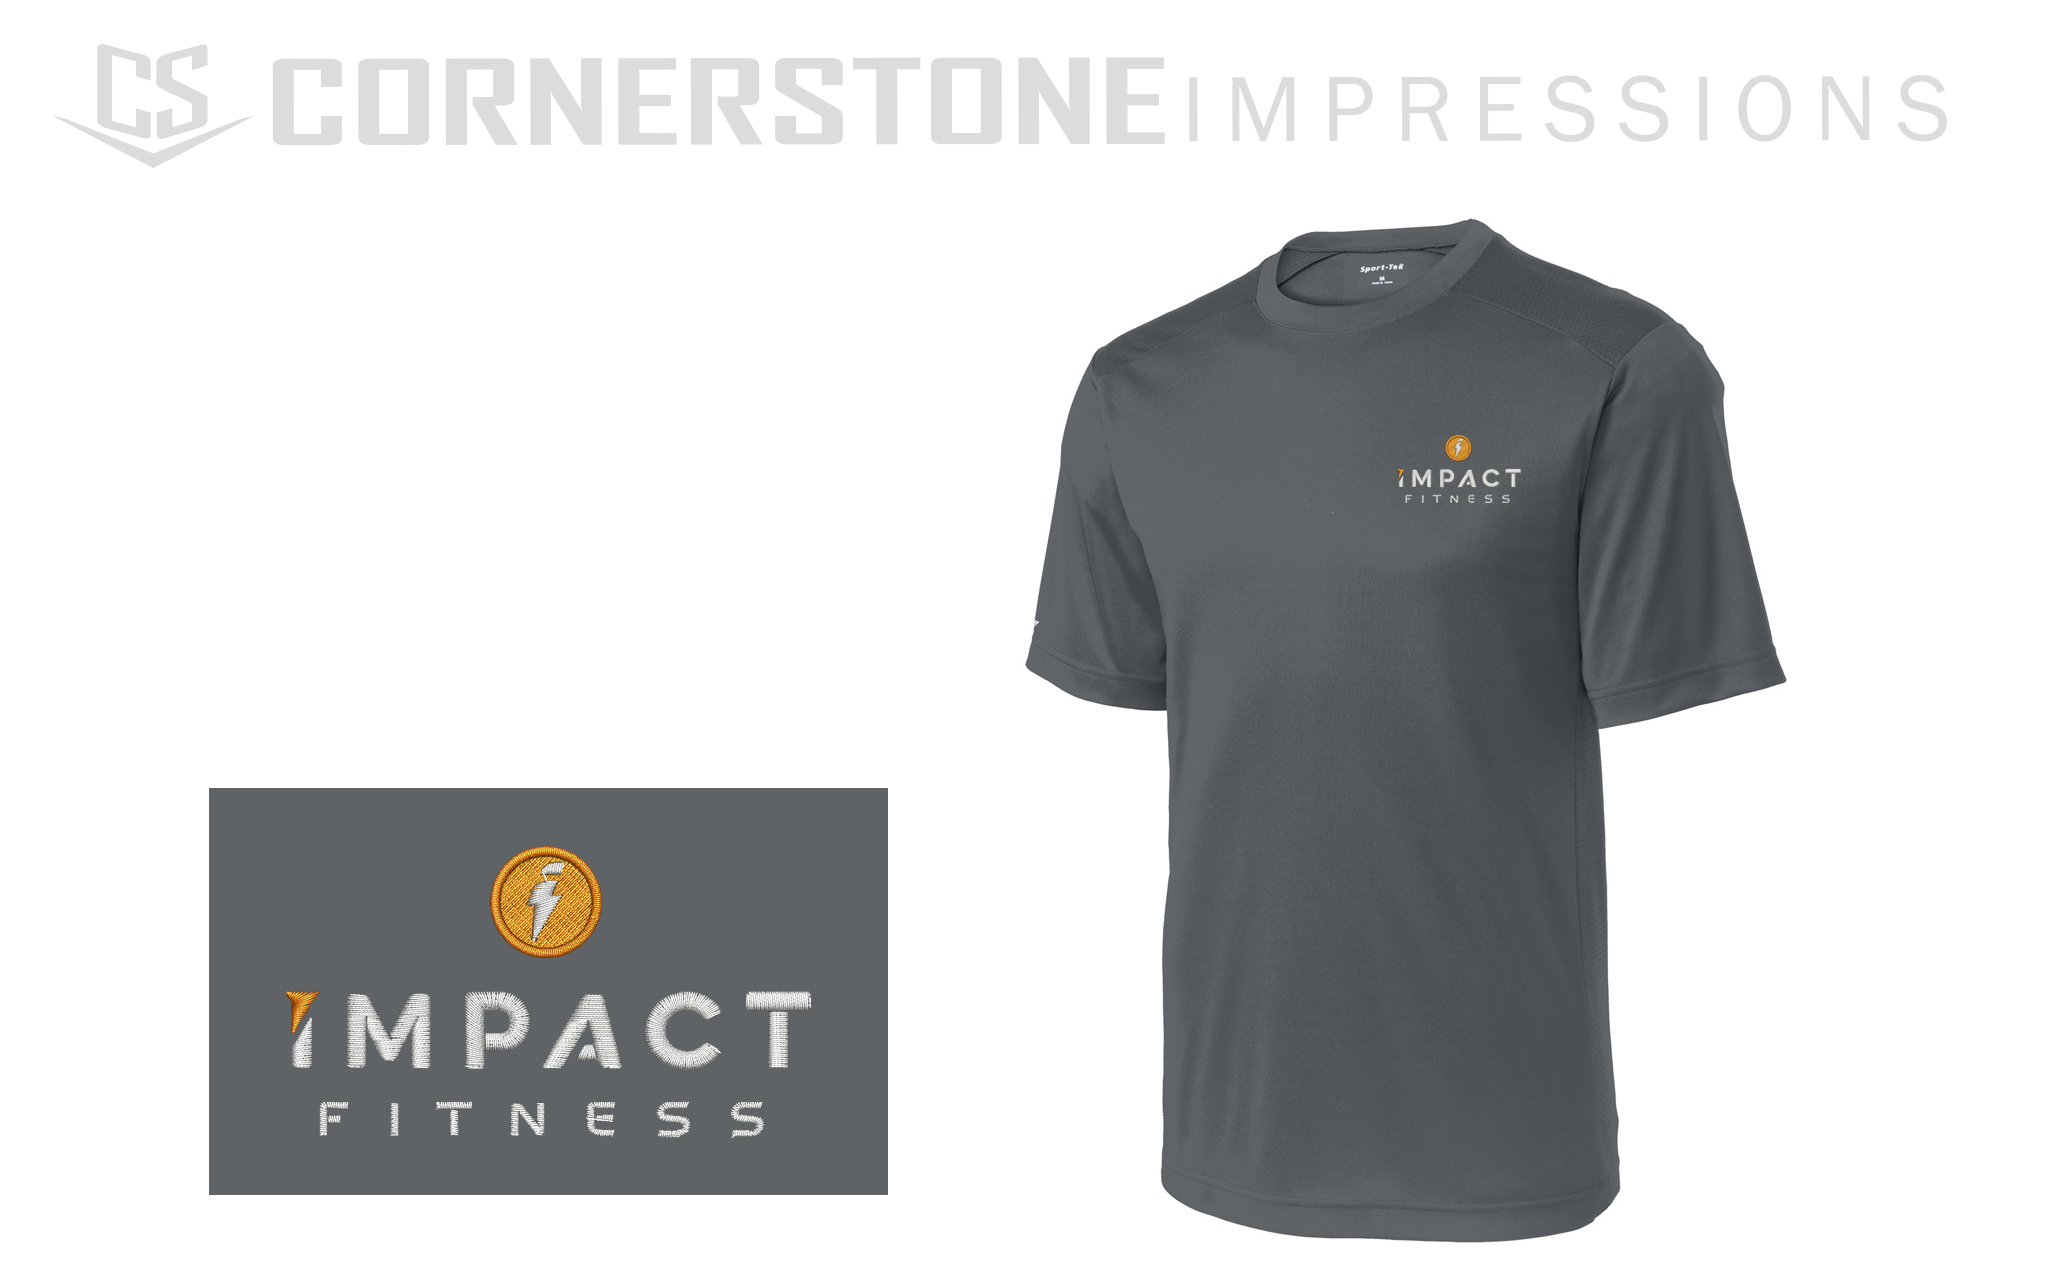 Custom embroidered dri-fit polos are PERFECT for trainers, athletes, and gym rats. We can turn your logo into an embroidery ready file and provide the shirts! The work is done for you, all you have to do is ask. Click the link to request a quote. :)